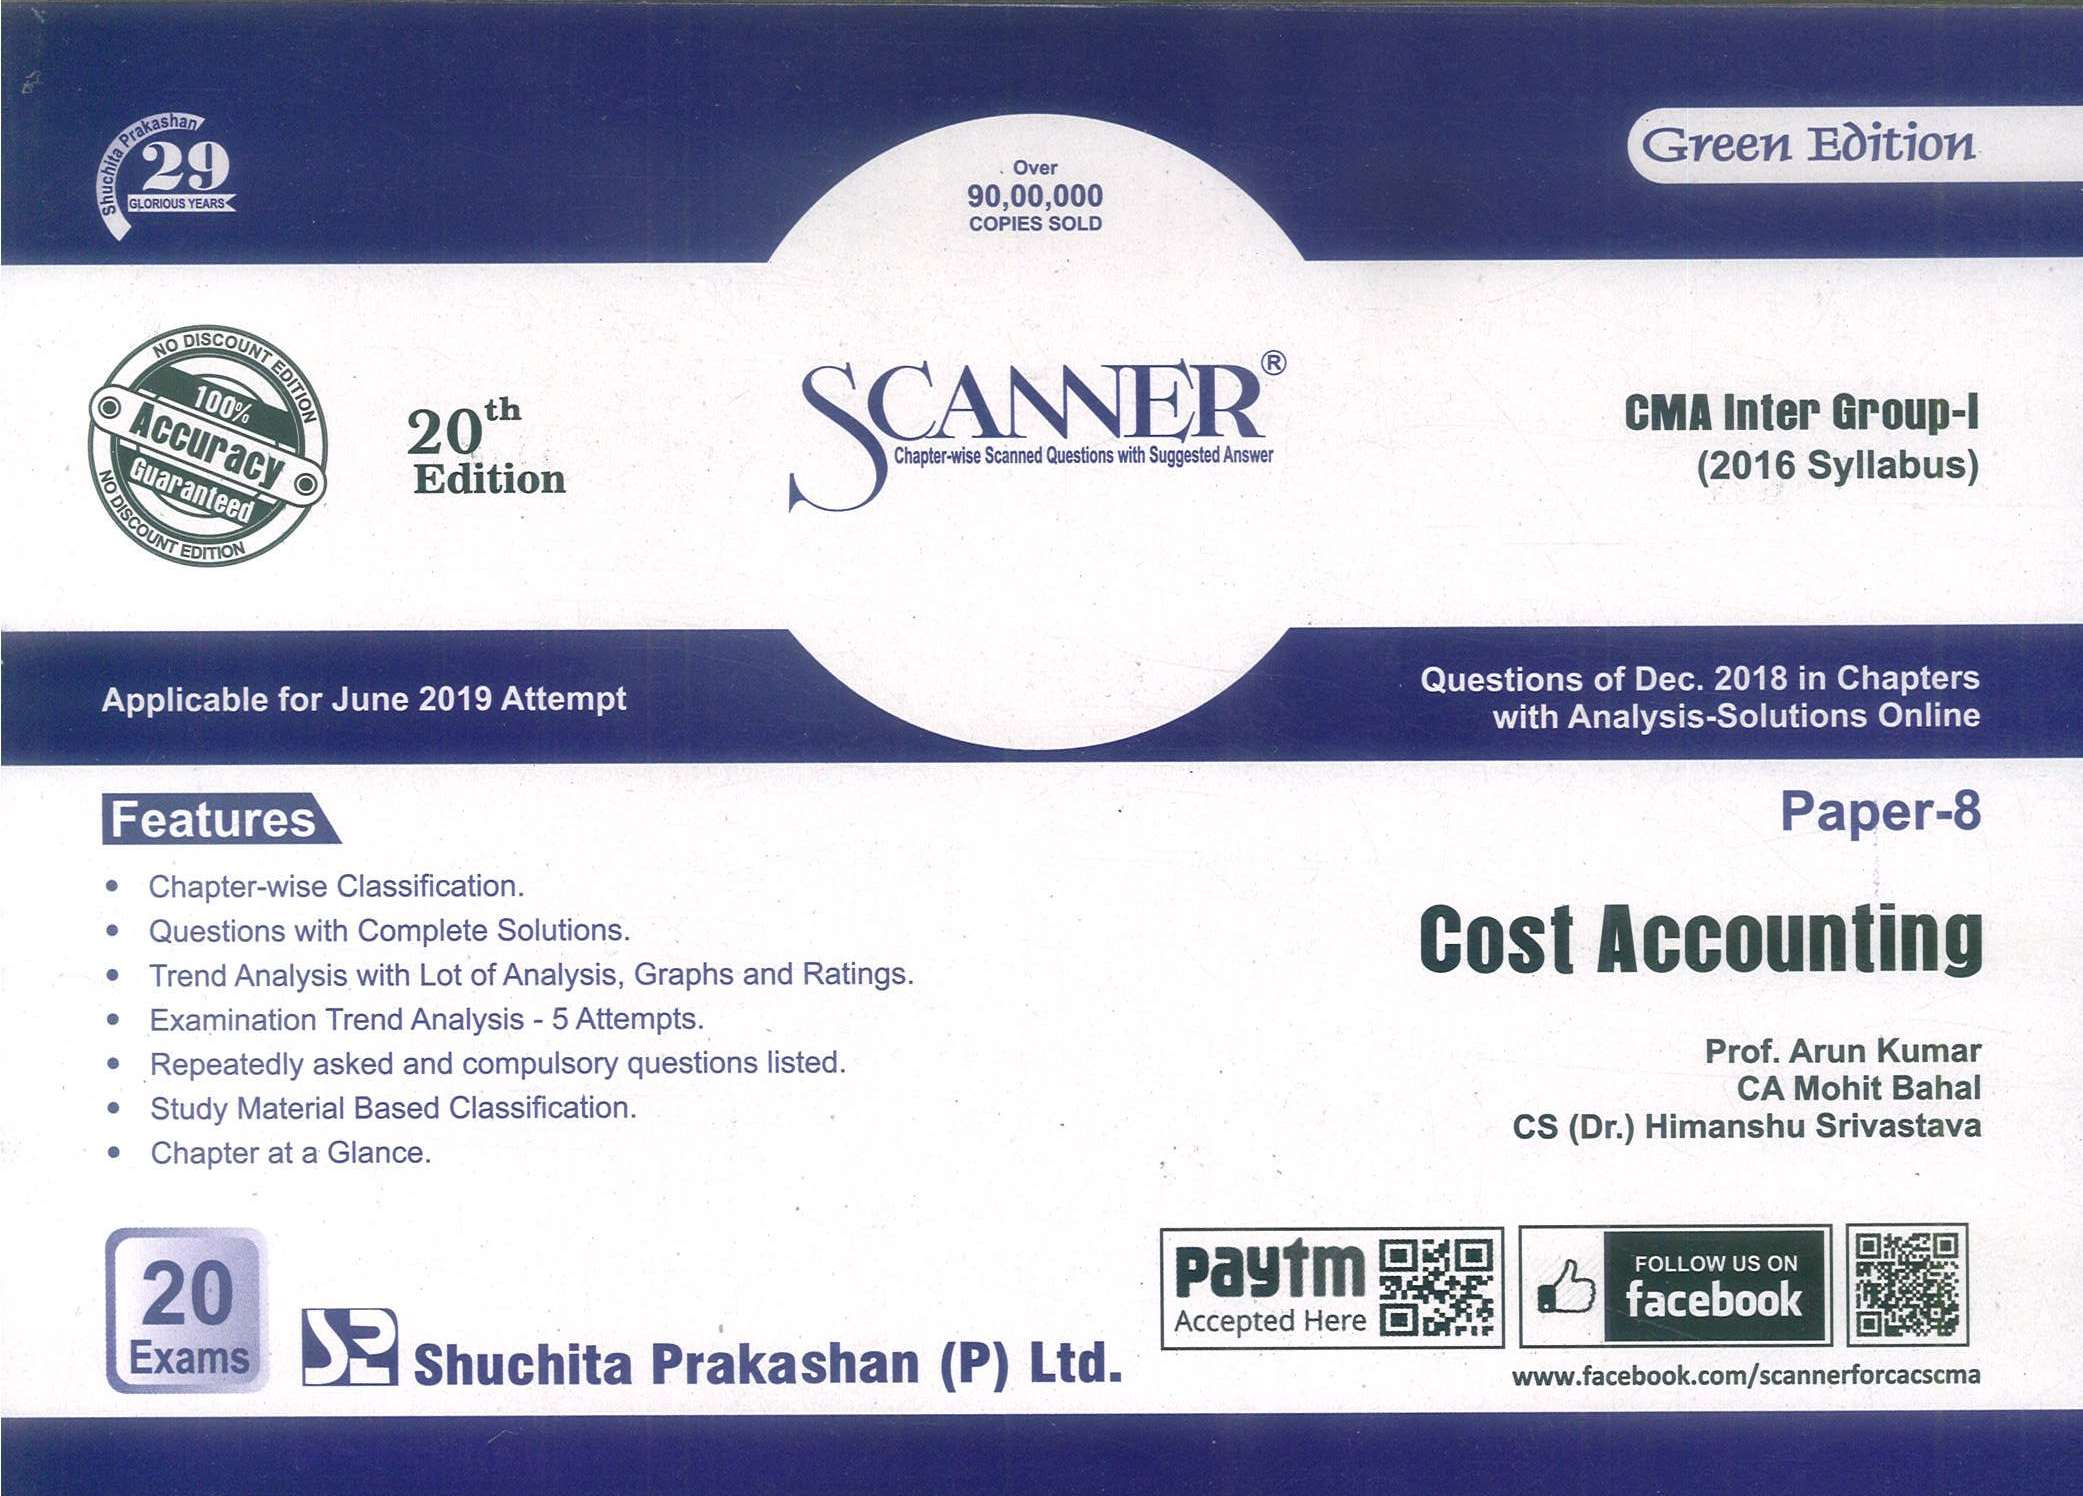 Shuchita Solved Scanner CMA Inter Group-I (Syllabus 2016) Paper-8 Cost Accounting By Prof. Arun Kumar, CA Mohit Bahal and CS (Dr.) Himanshu Srivastava Applicable for  June 2019 Exam (Shuchita Prakashan) 20th Edition 2019